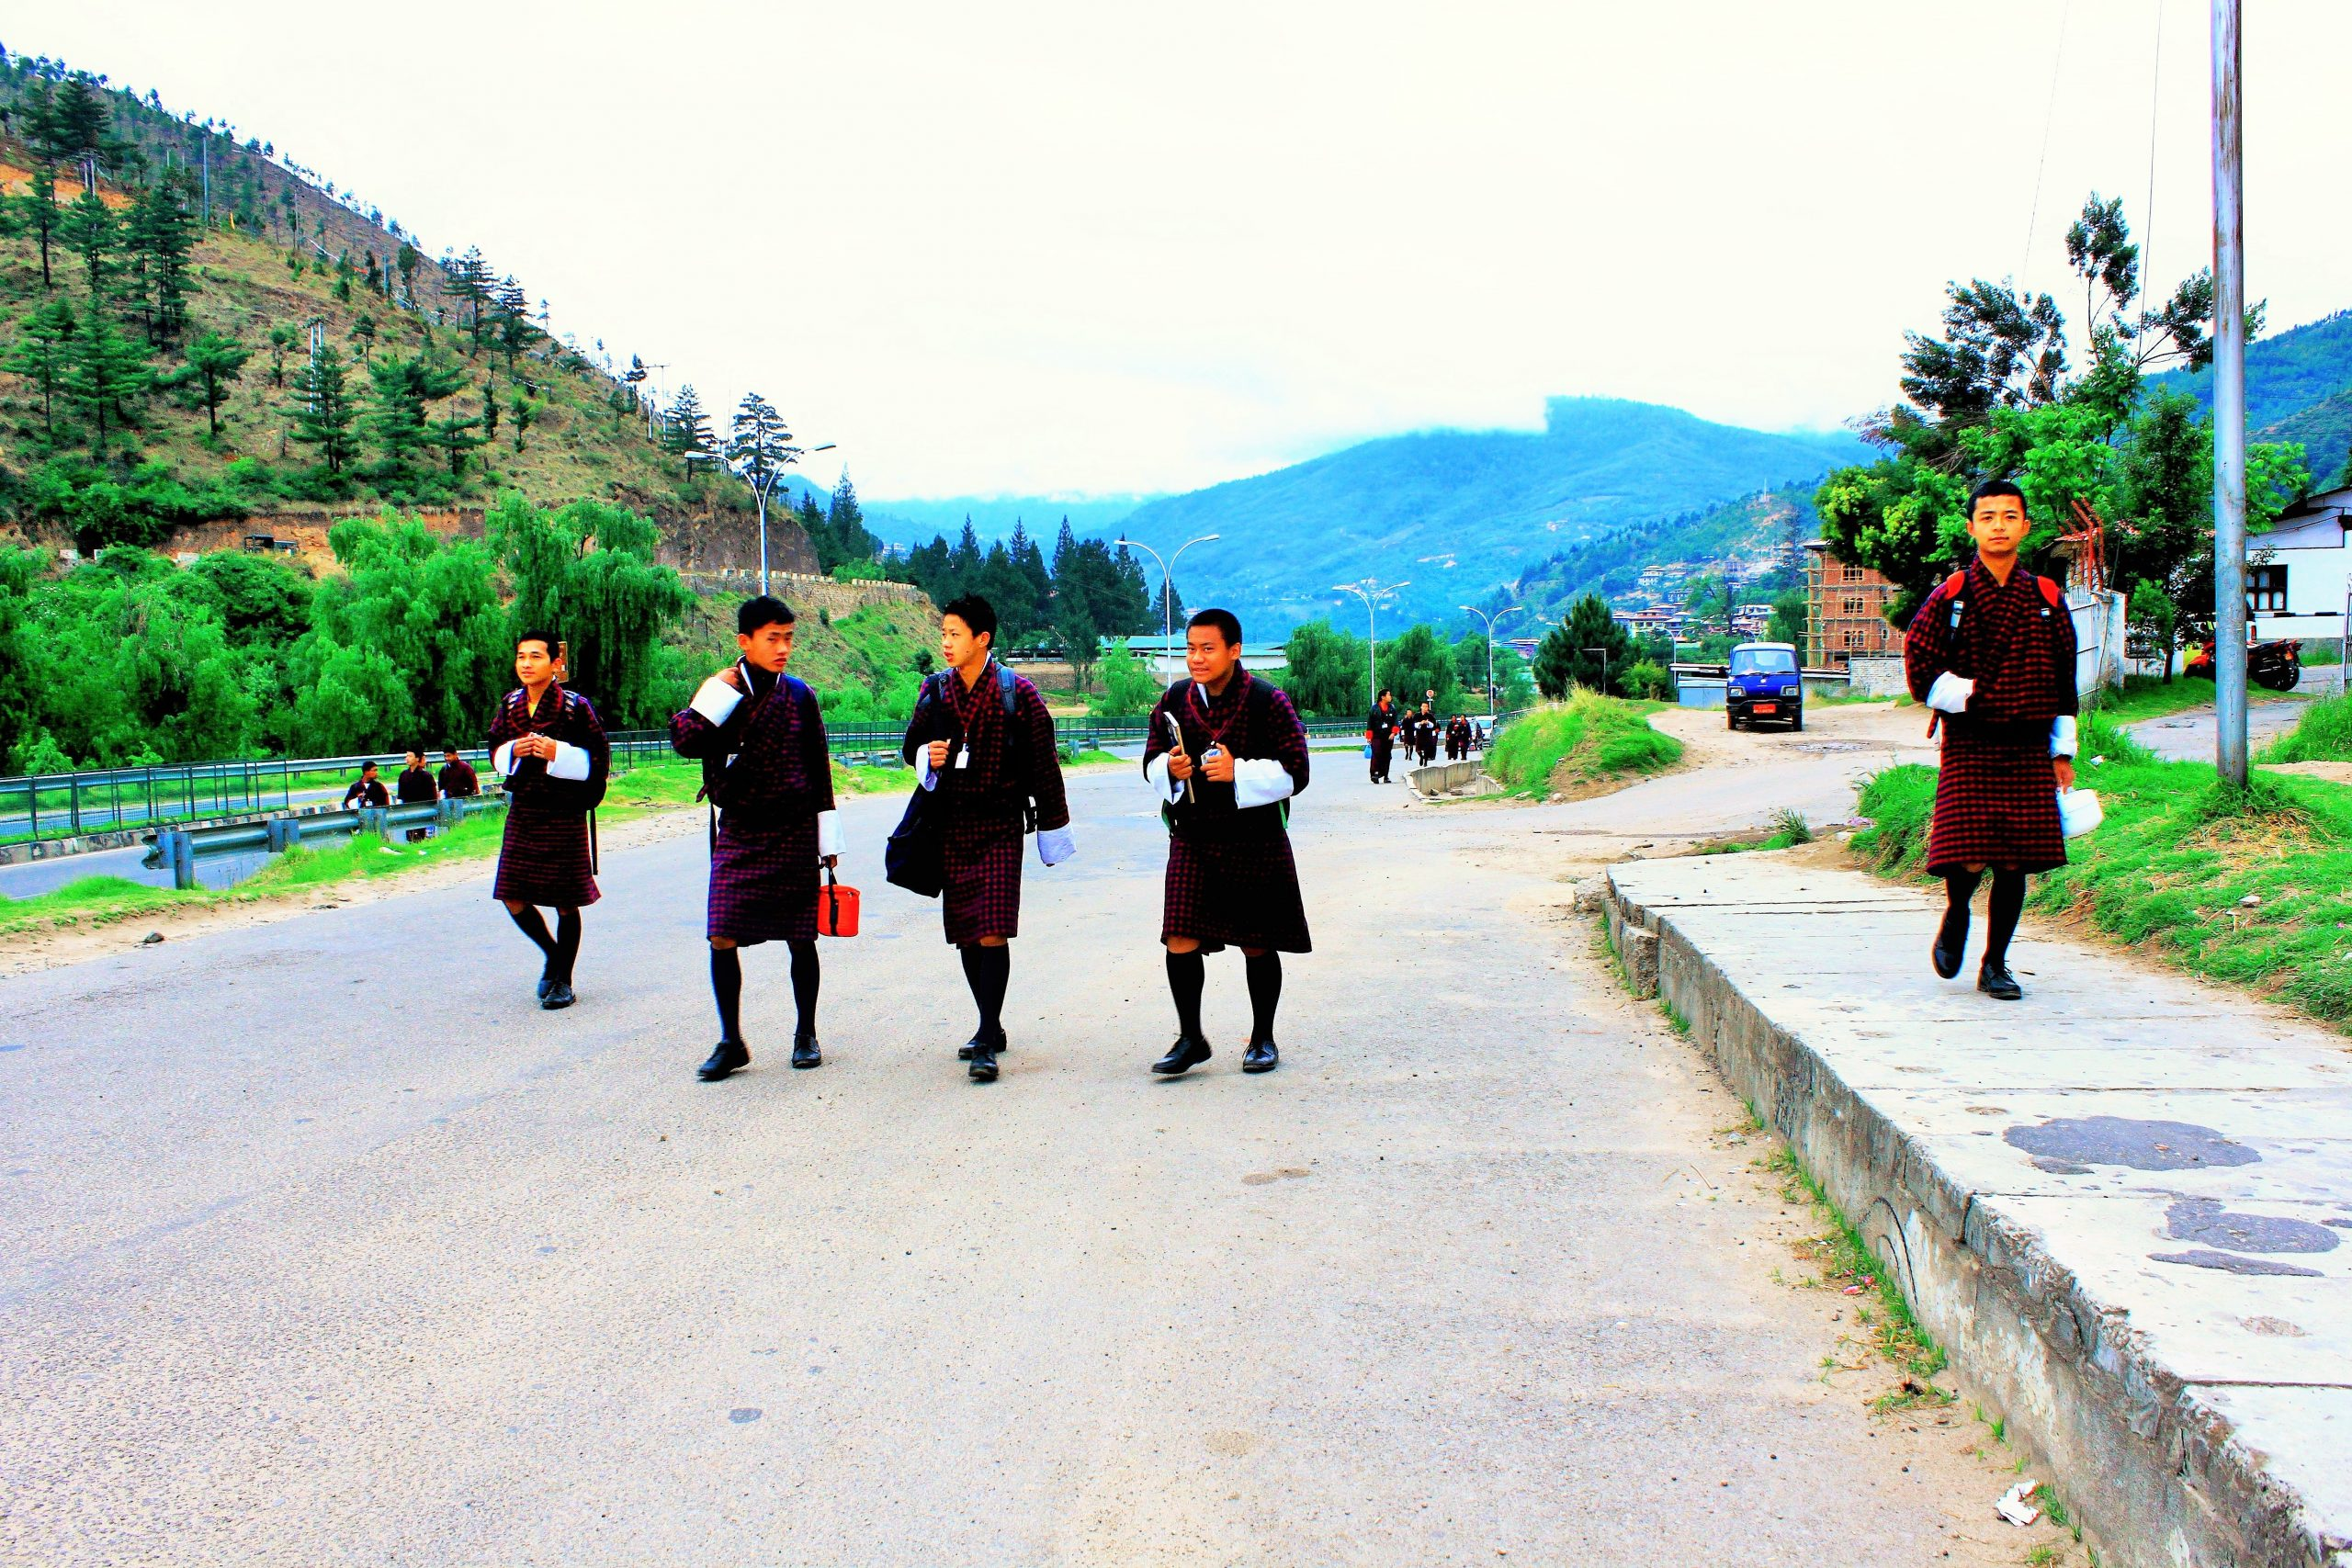 People at Bhutanees,Thimpu, Bhutan.